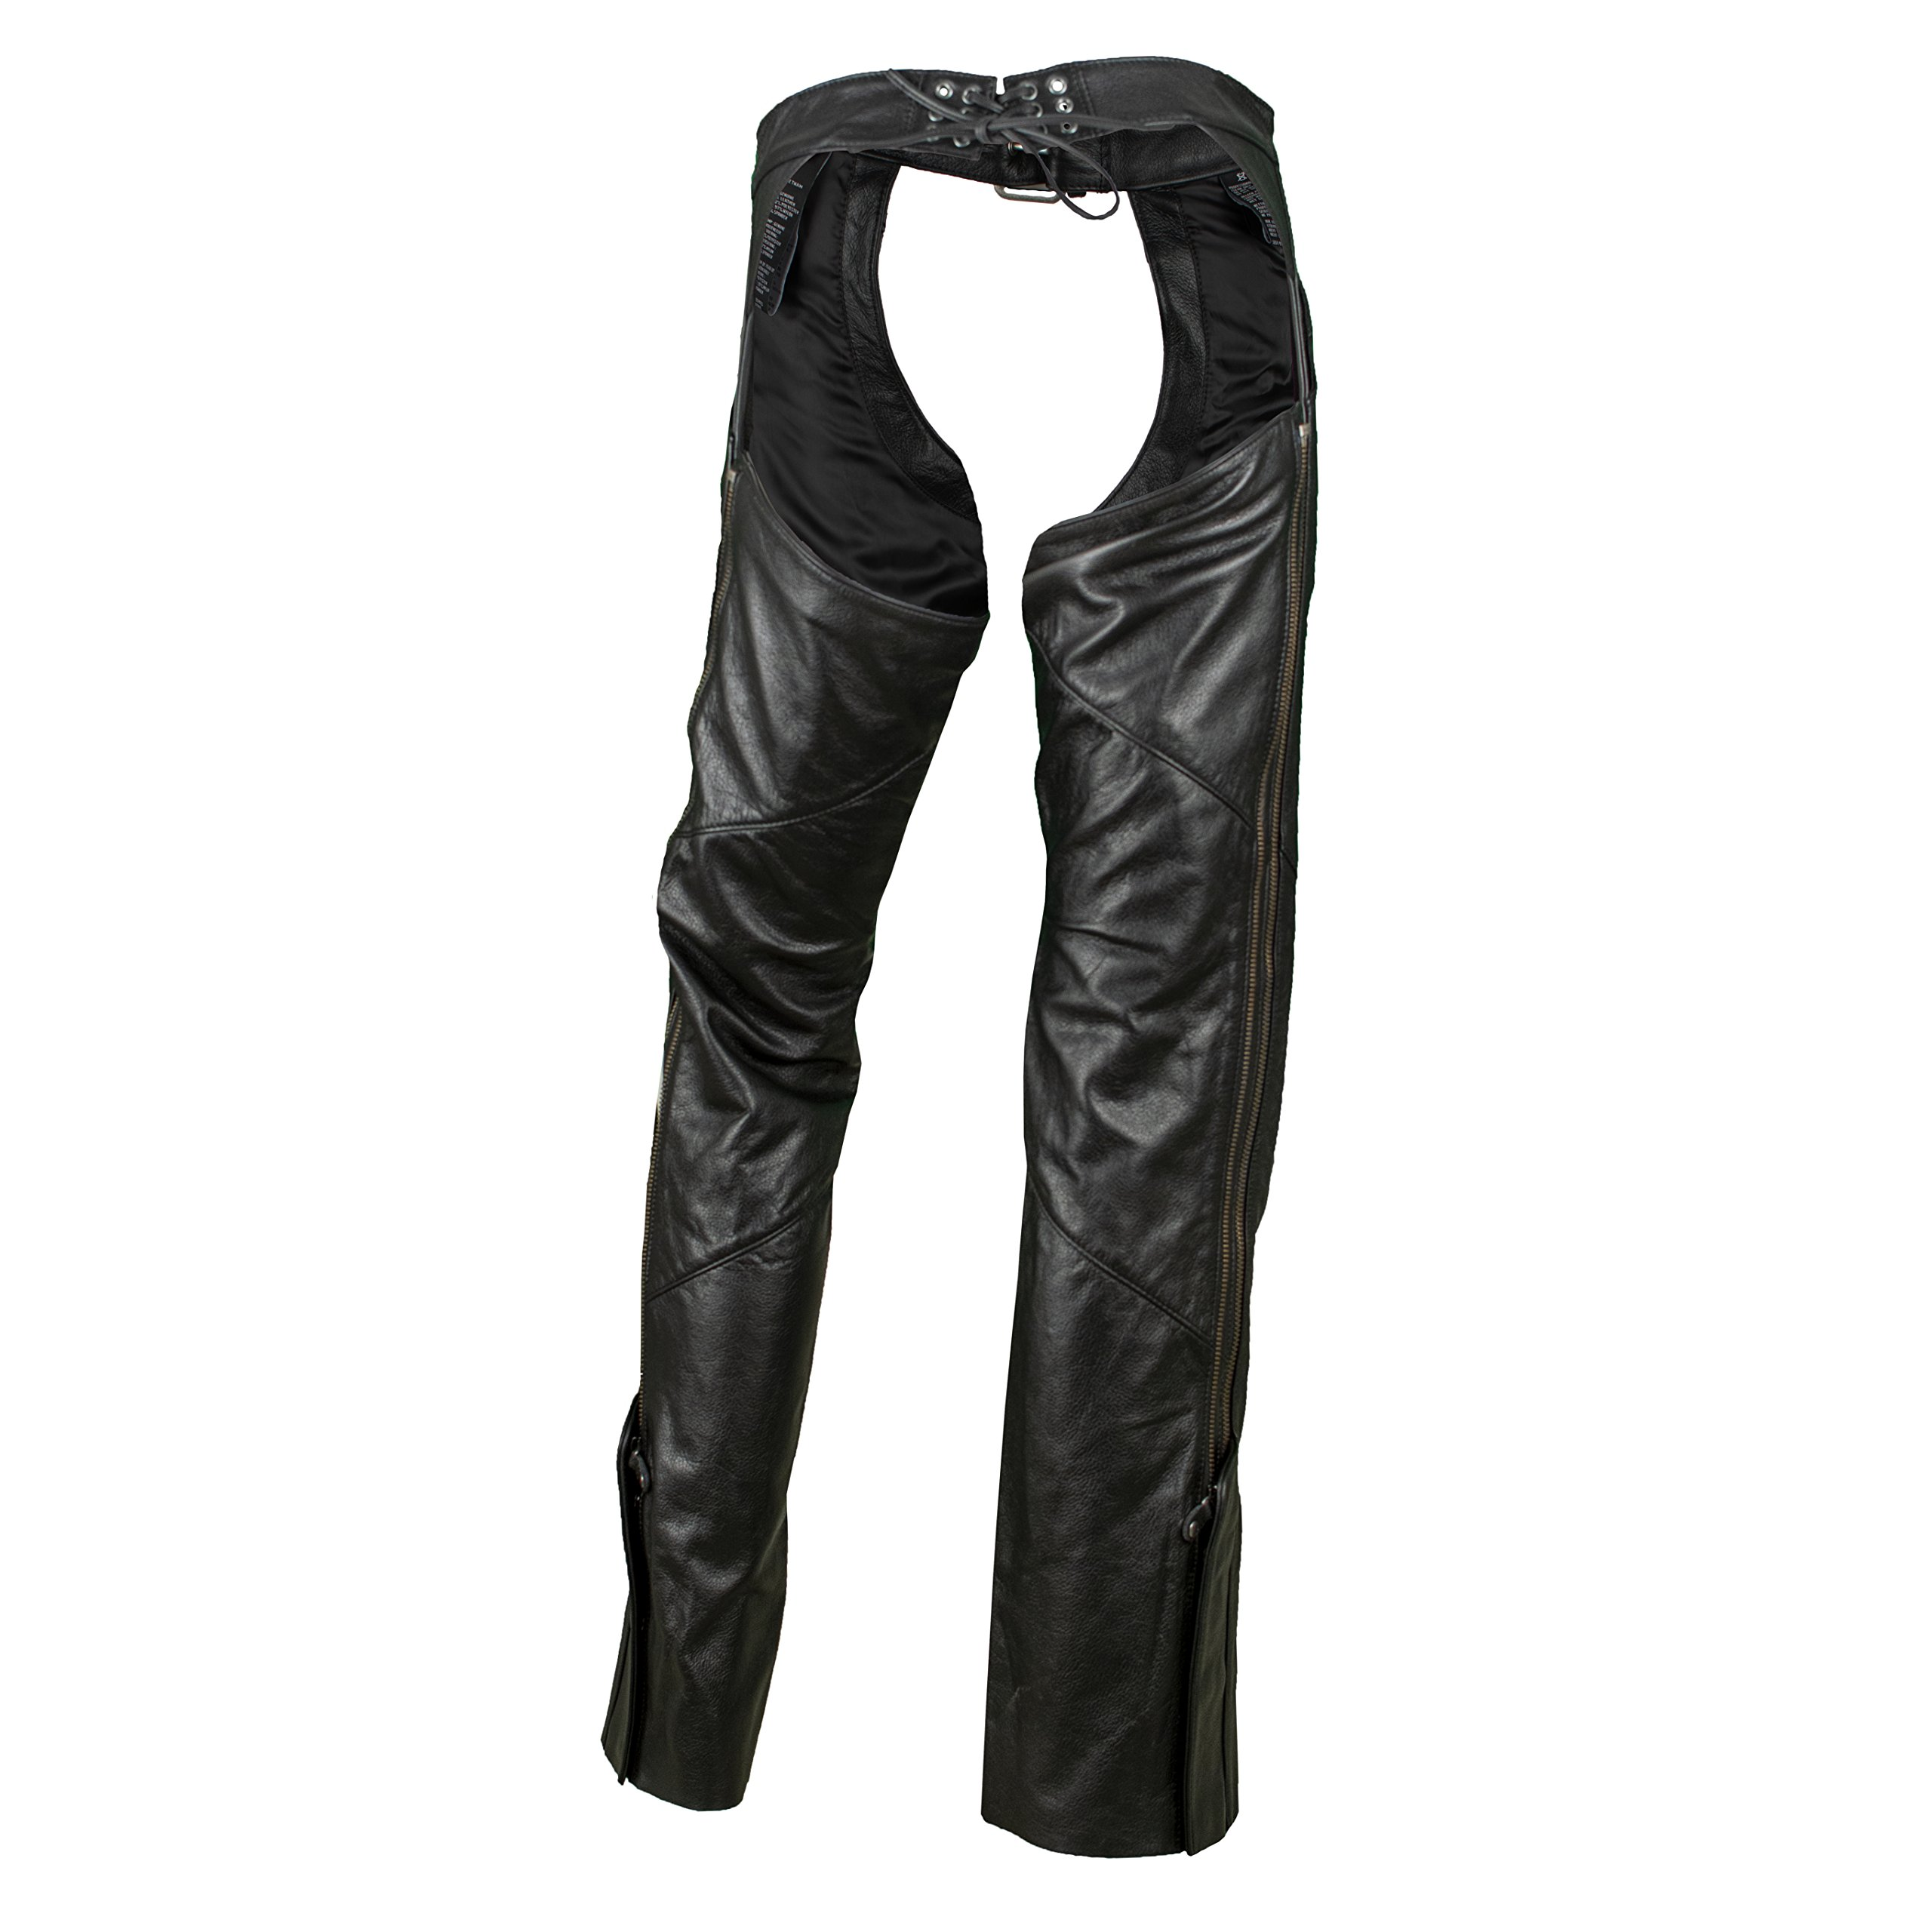 Harley-Davidson Women's Deluxe Leather Motorcycle Chaps 98097-06VW (Small) by Harley-Davidson (Image #2)